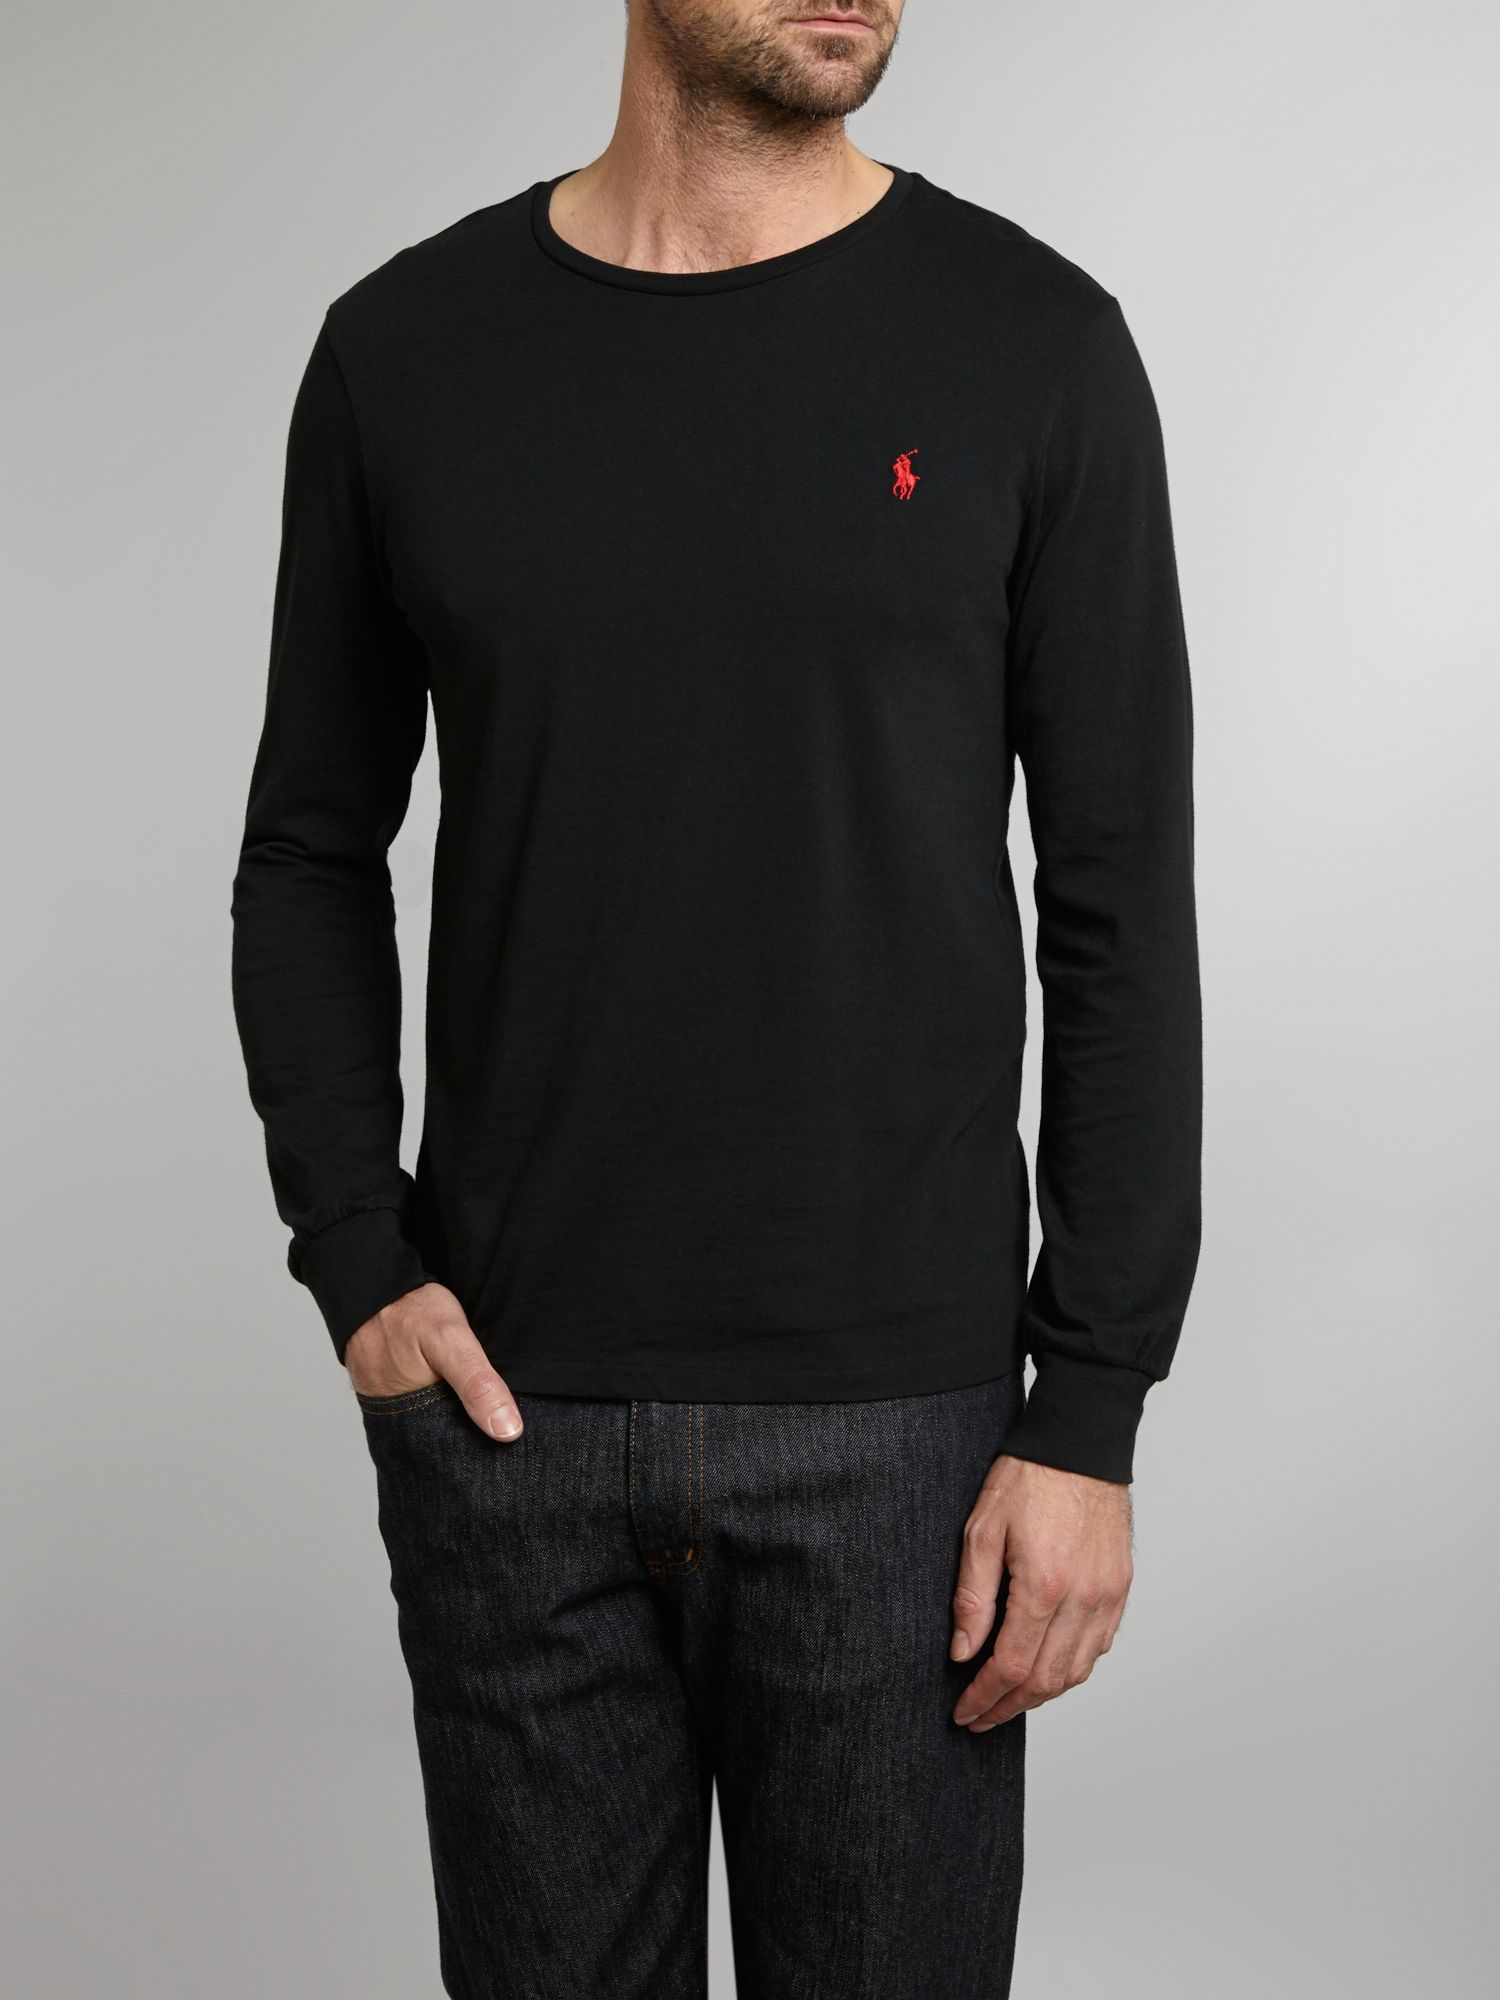 Polo ralph lauren long sleeve custom fit crew neck tshirt for Black fitted long sleeve t shirts